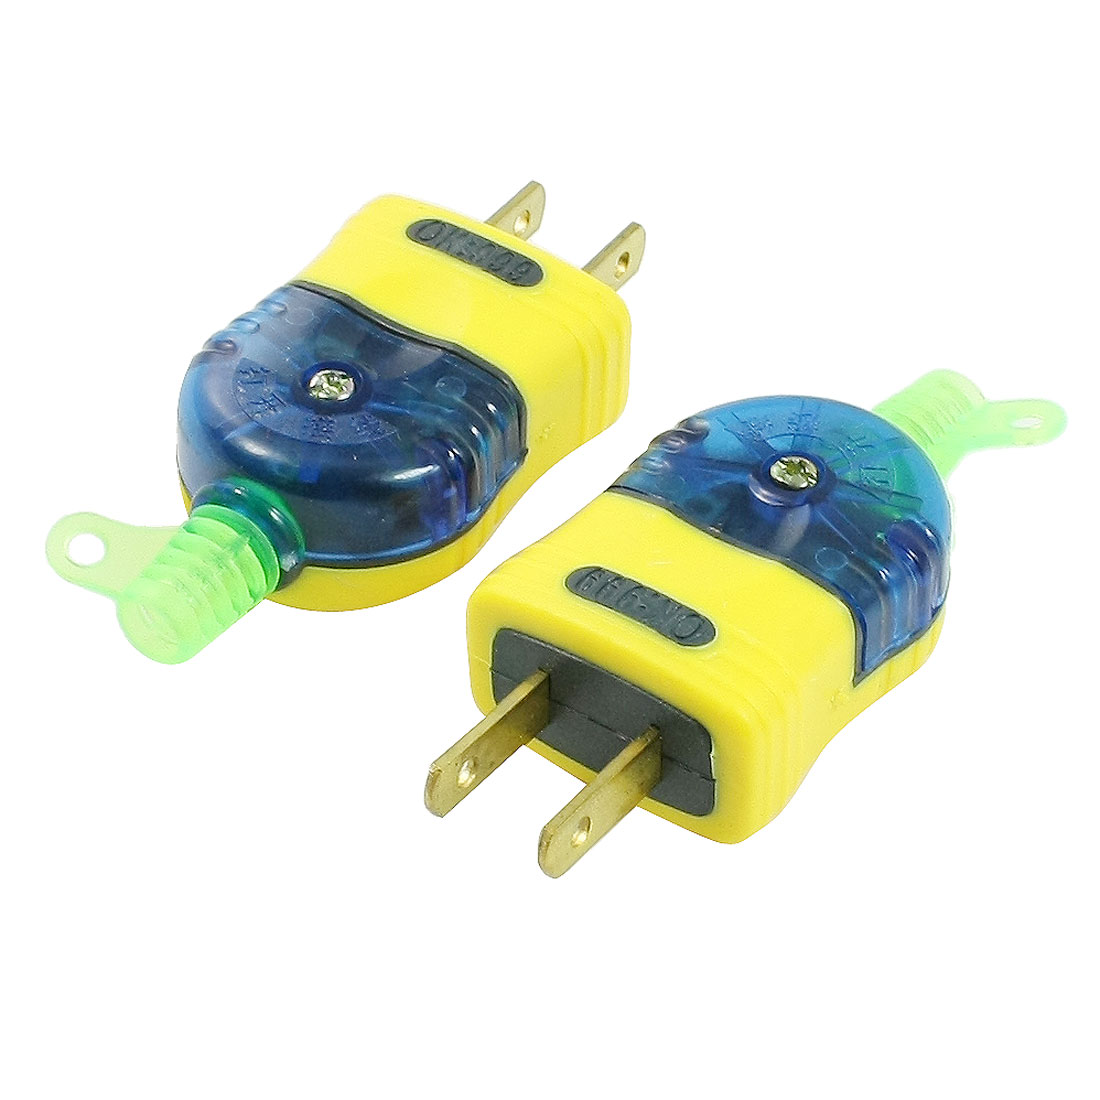 2 Pcs Yellow Plastic Shell 2 Pin US Type Power Adapter Plug Connector 250VAC 16A